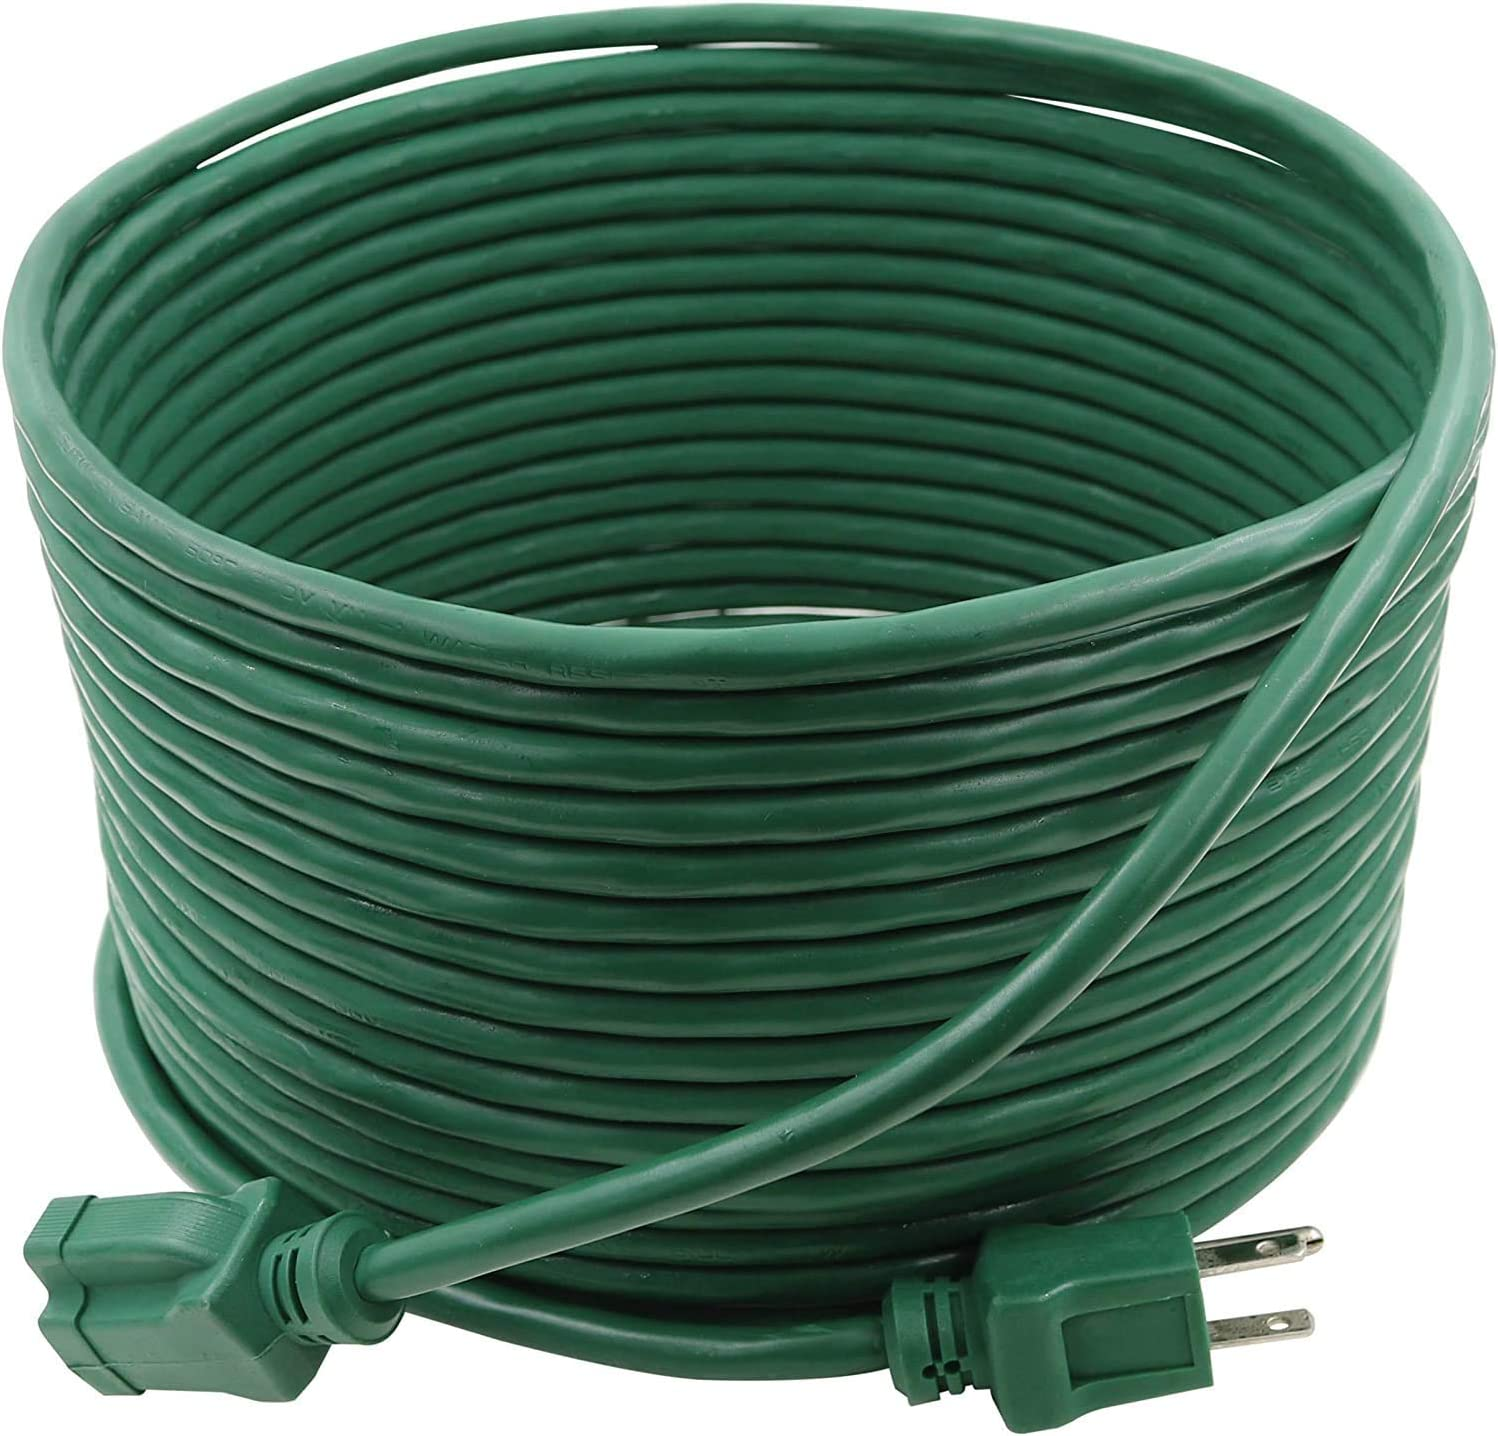 Clear Power 35 ft Lawn & Garden Outdoor Extension Cord 16/3 SJTW, Green, Water & Weather Resistant, Flame Retardant, 3 Prong Grounded Plug